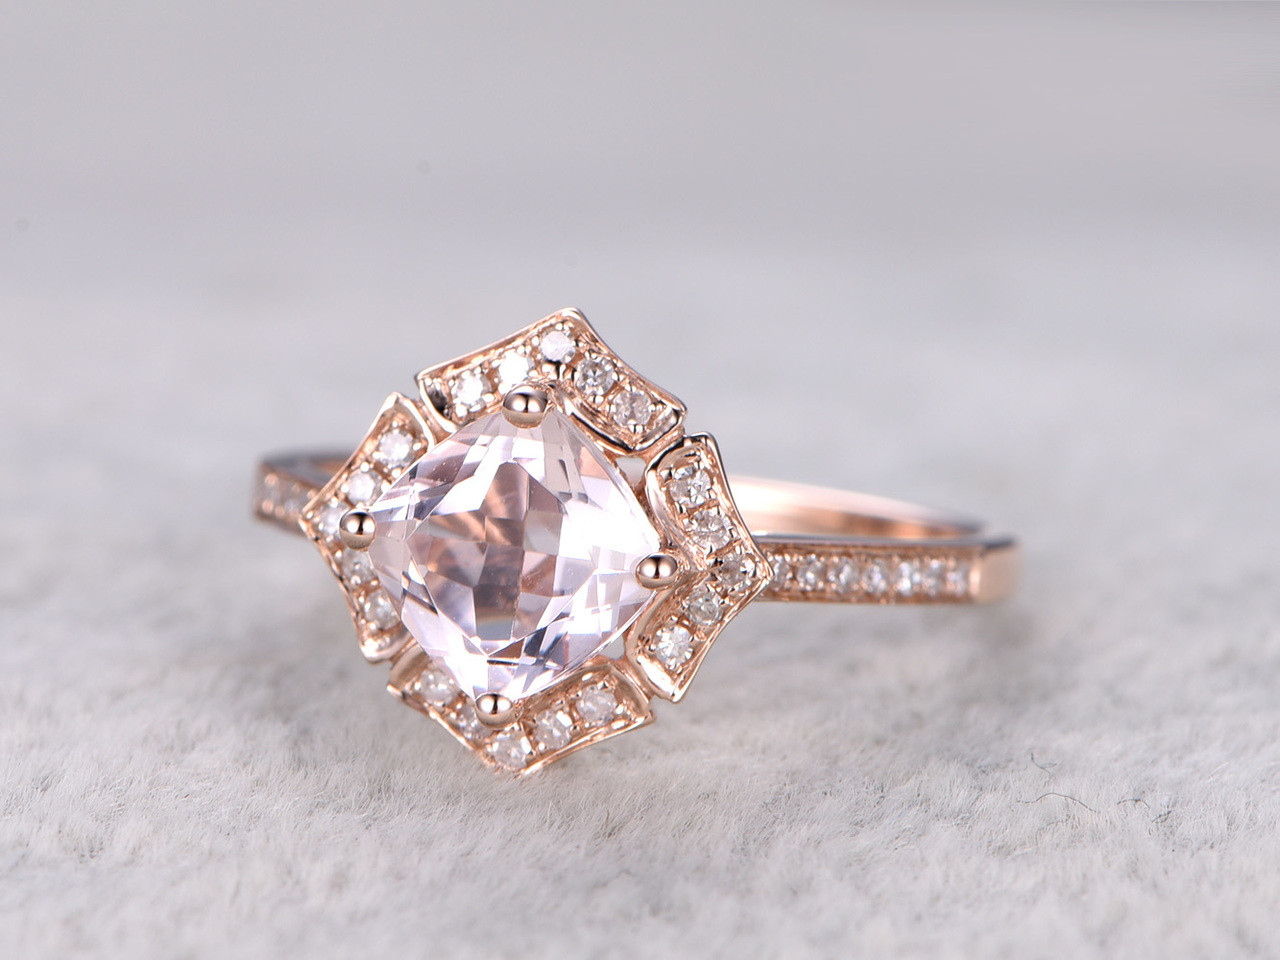 13 Carat Cushion Cut Morganite Engagement Ring Diamond Promise Ring 14k  Rose Gold Art Deco Flower